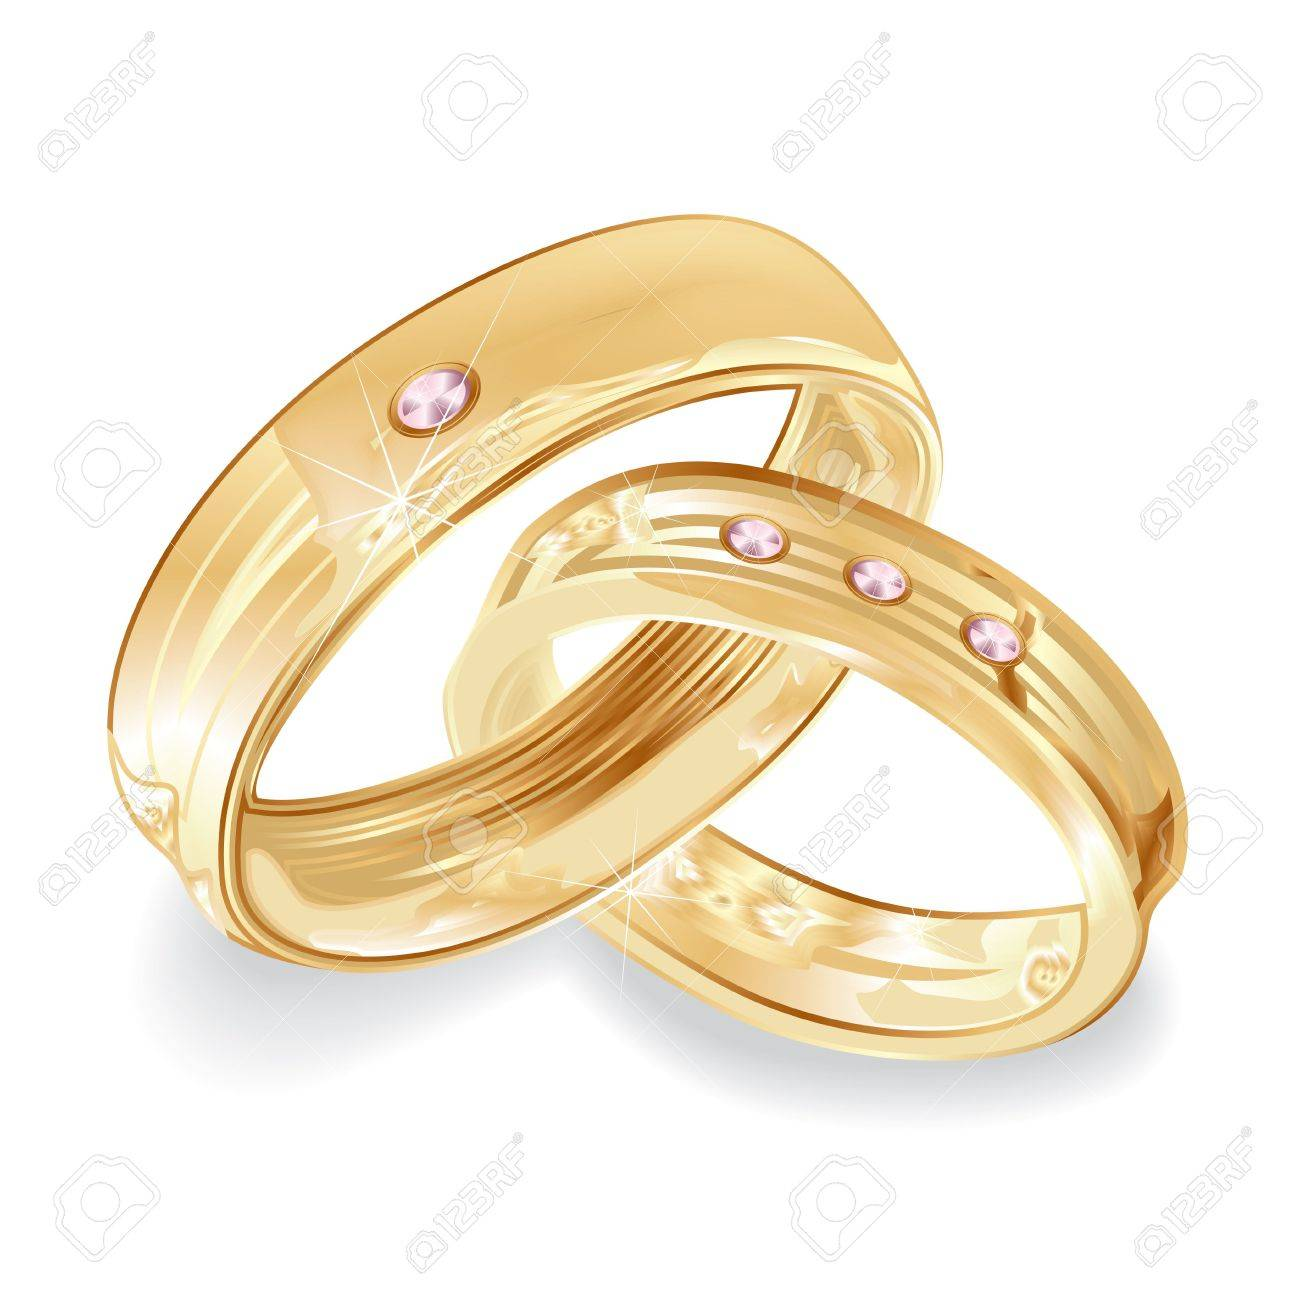 Female And Male Gold Wedding Rings Illustration Stock Photo